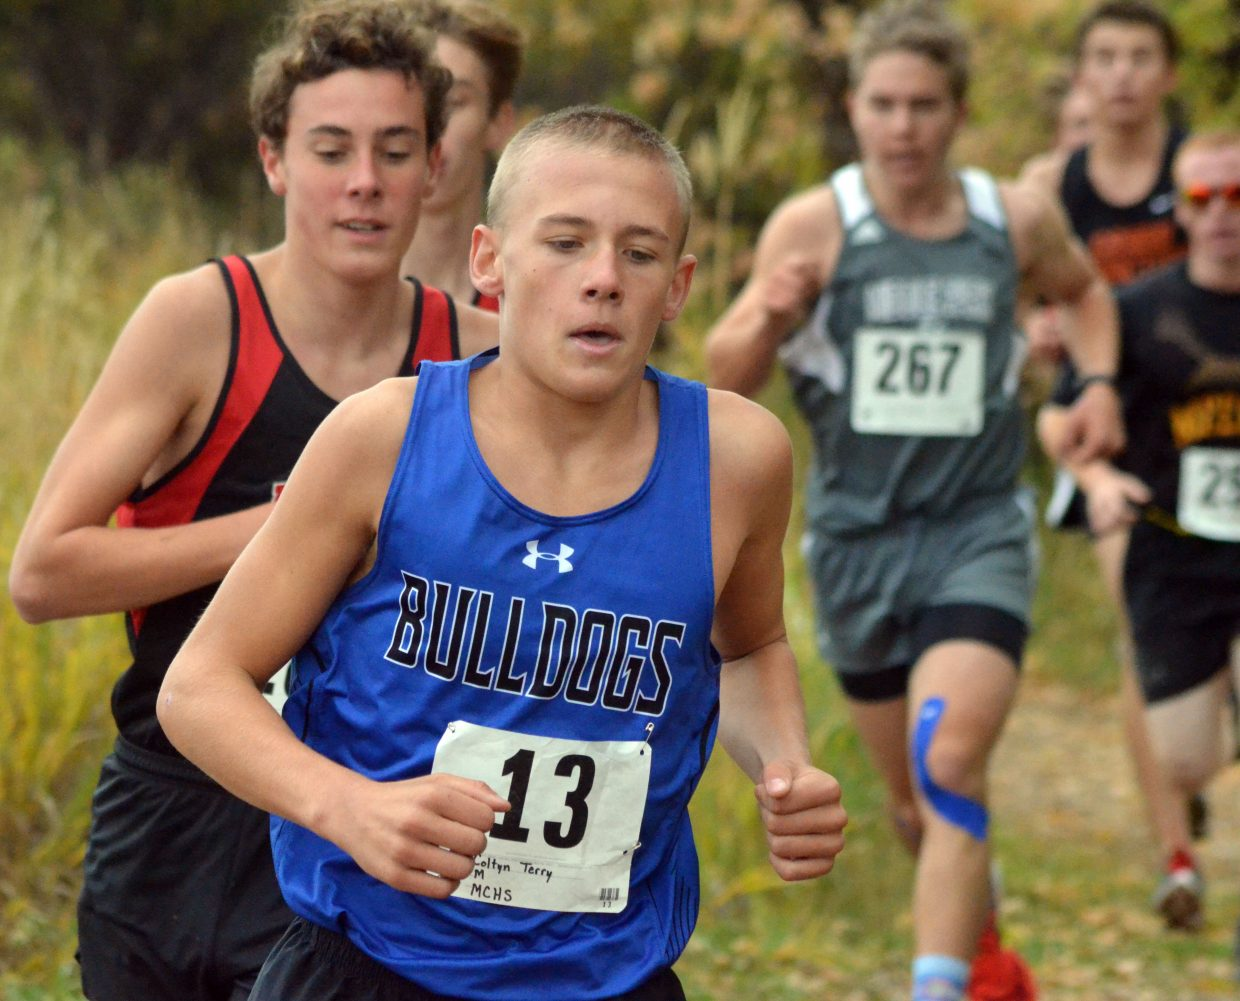 Moffat County High School's Coltyn Terry leads a wave of cross country runners through the Nature Trail during the Bulldog Invitational Saturday at Loudy-Simpson Park.